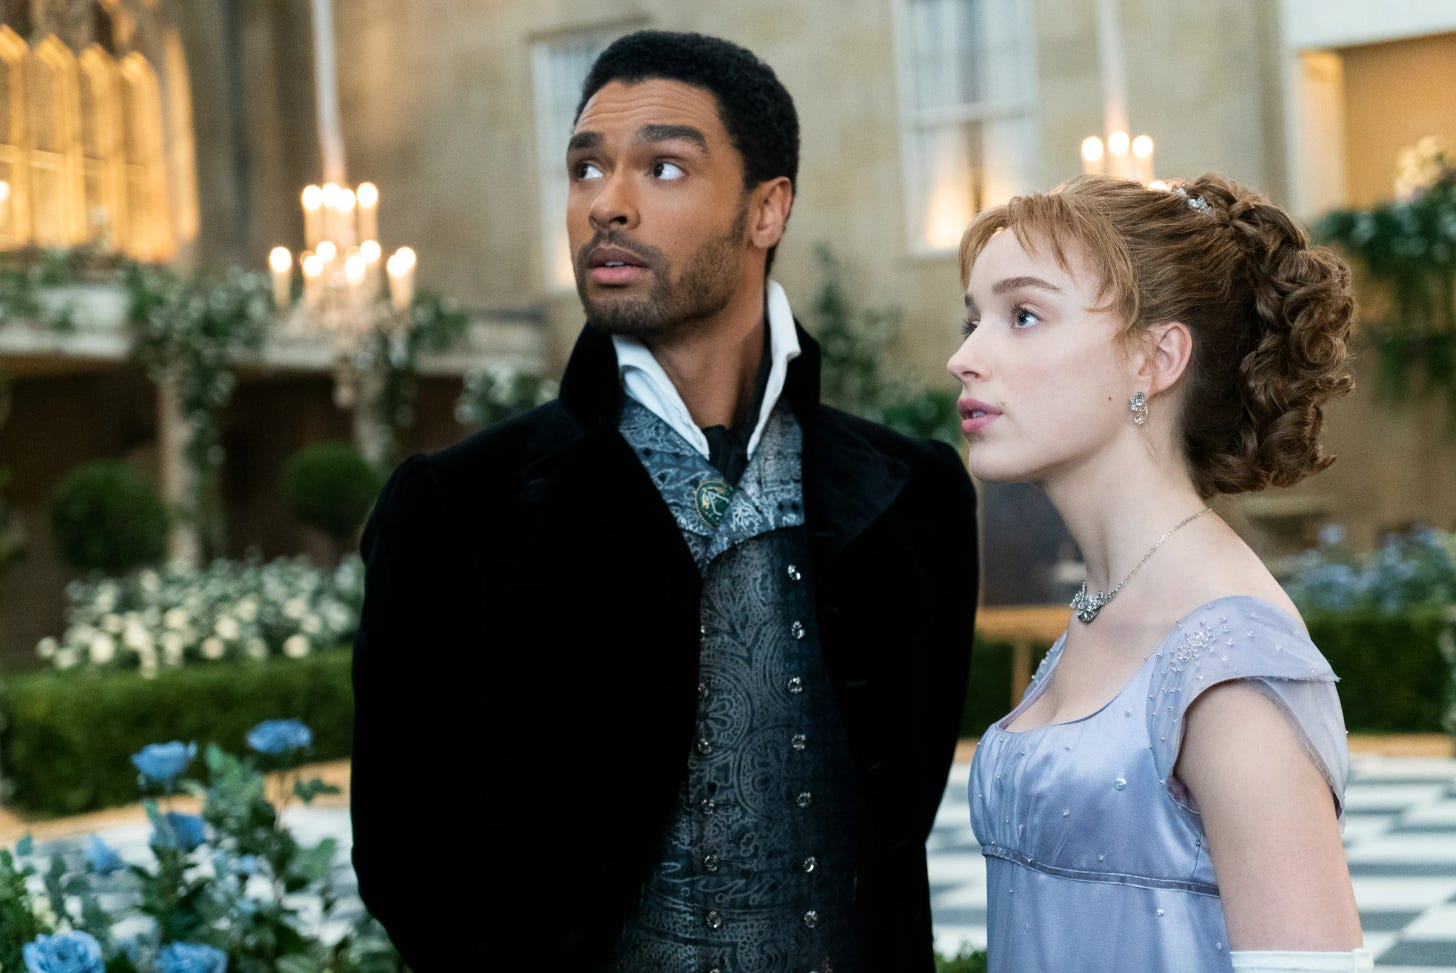 Simon and Daphne in Bridgerton, standing together and looking off-screen to the left